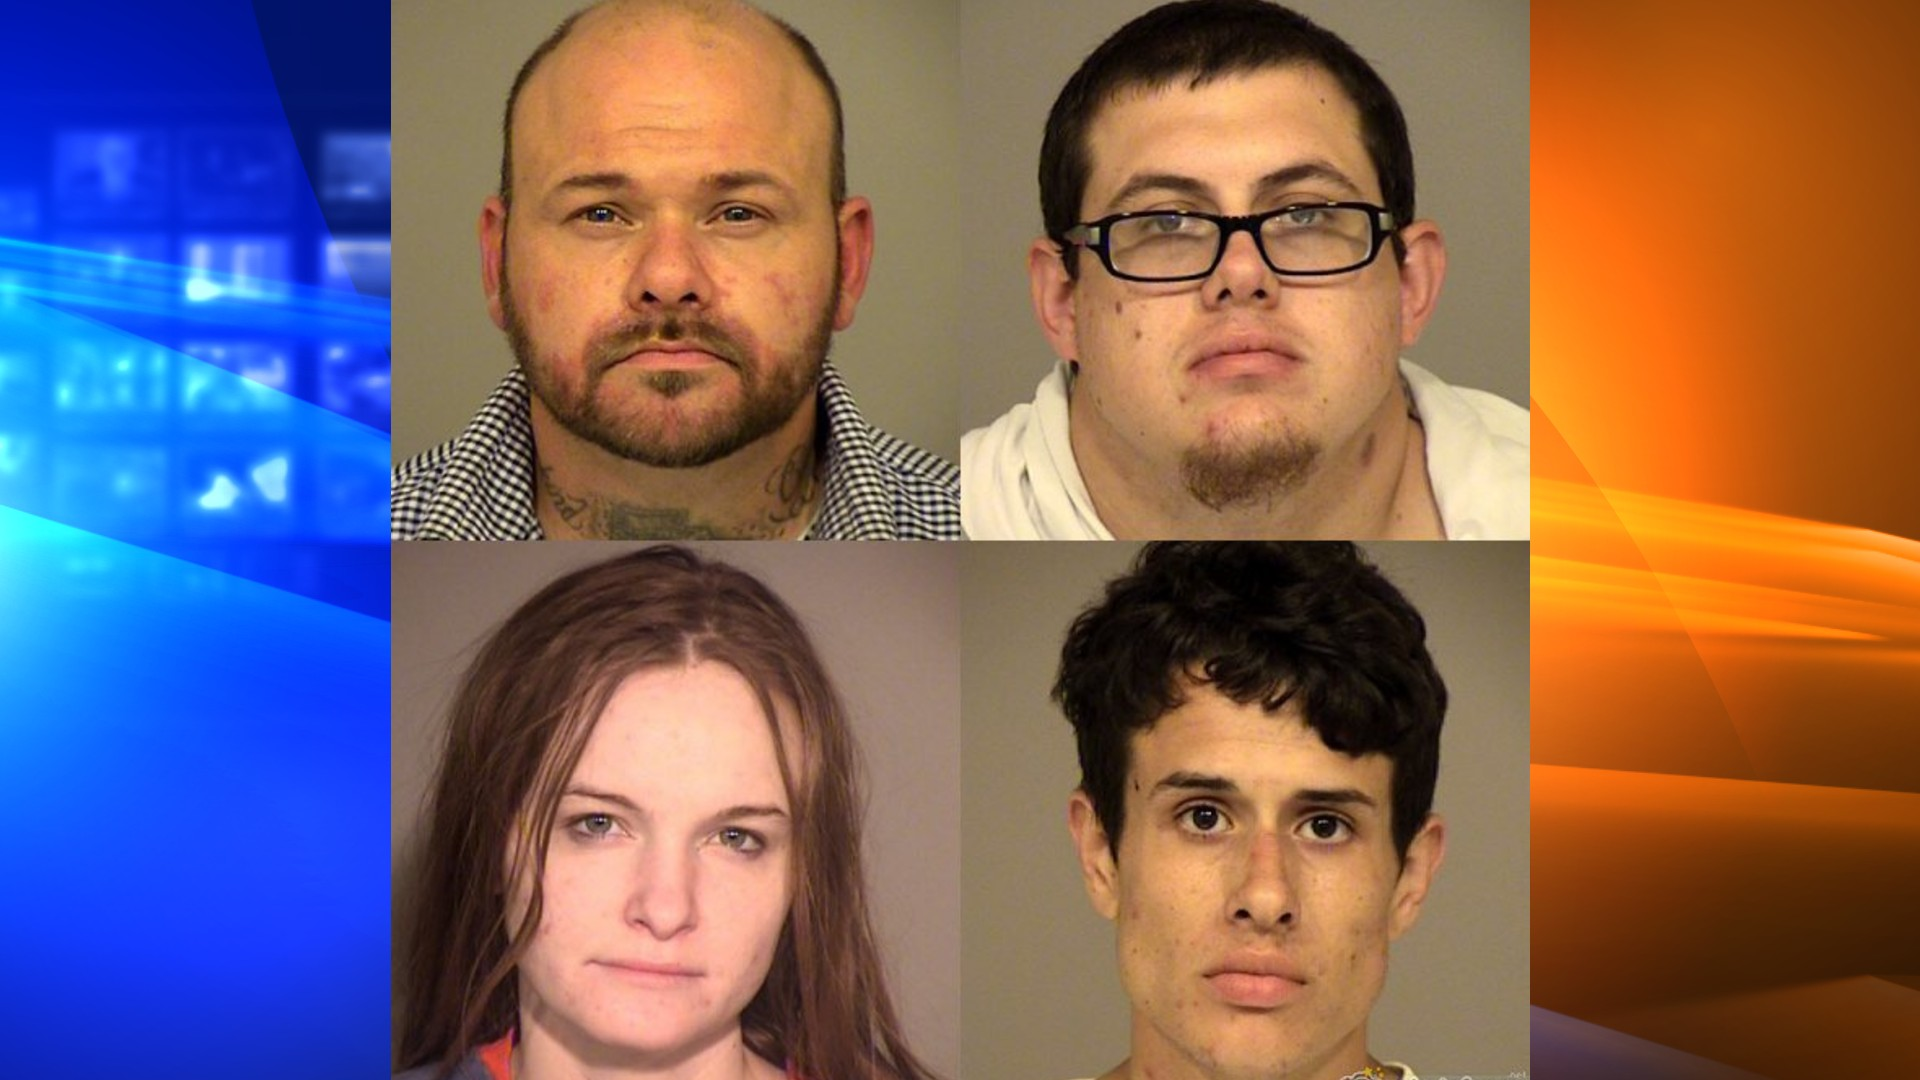 Robert Schneider, Russel Dow, Michaela Feczko and Coty Hackett are seen in booking photos released by the Ventura County Sheriff's Office on July 23, 2020.